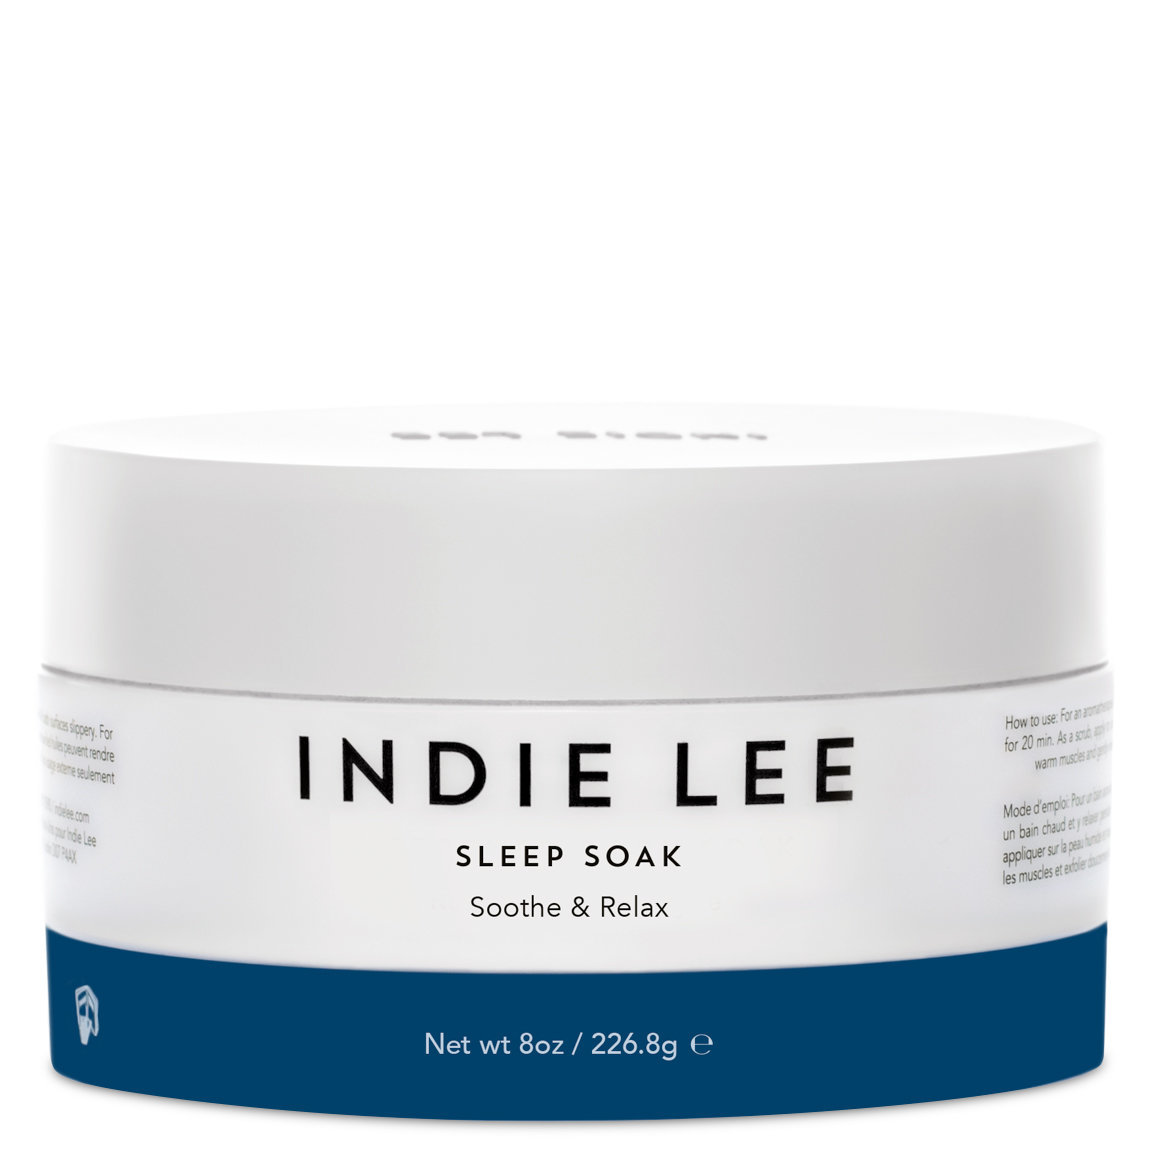 Indie Lee Sleep Soak product swatch.